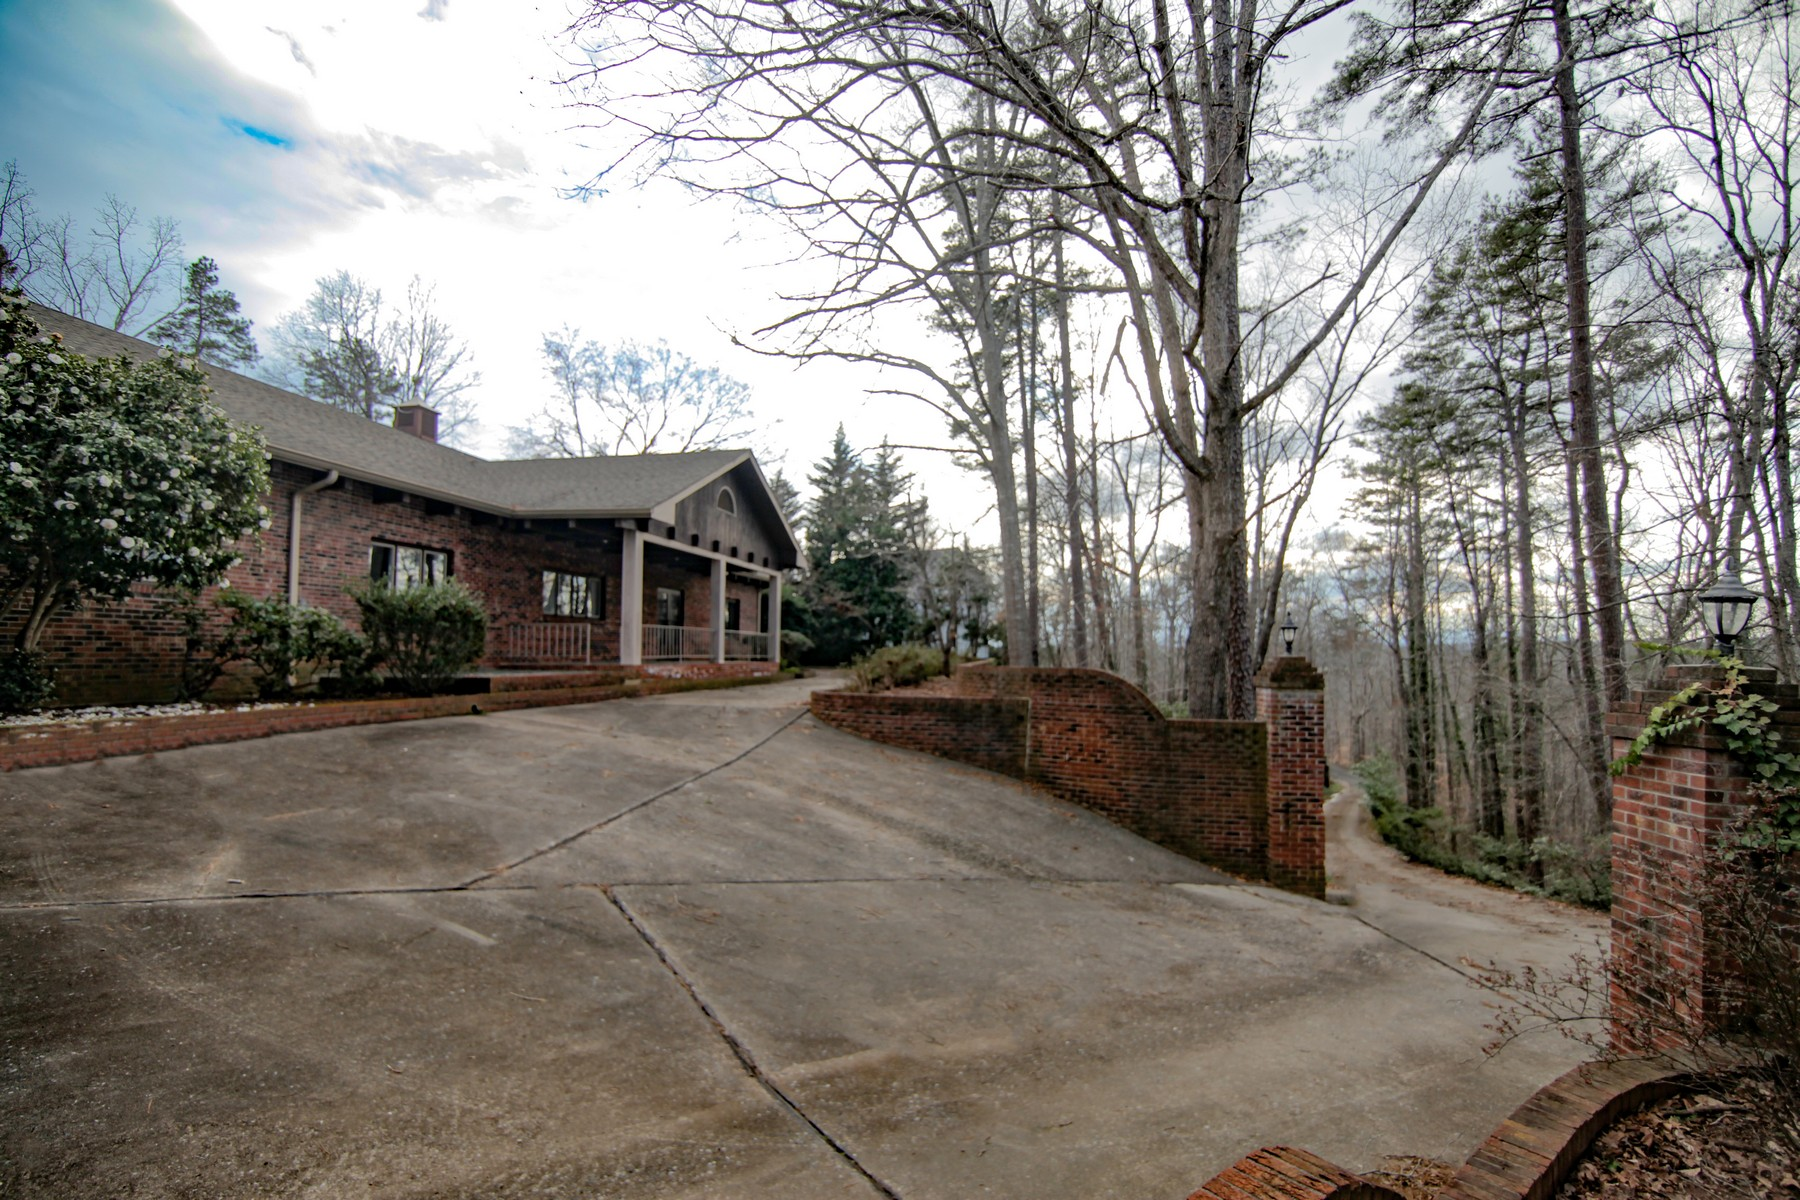 Single Family Home for Active at 152 Muscadine Ridge, Rutherfordton, NC 152 Muscadine Ridge Rutherfordton, North Carolina 28139 United States